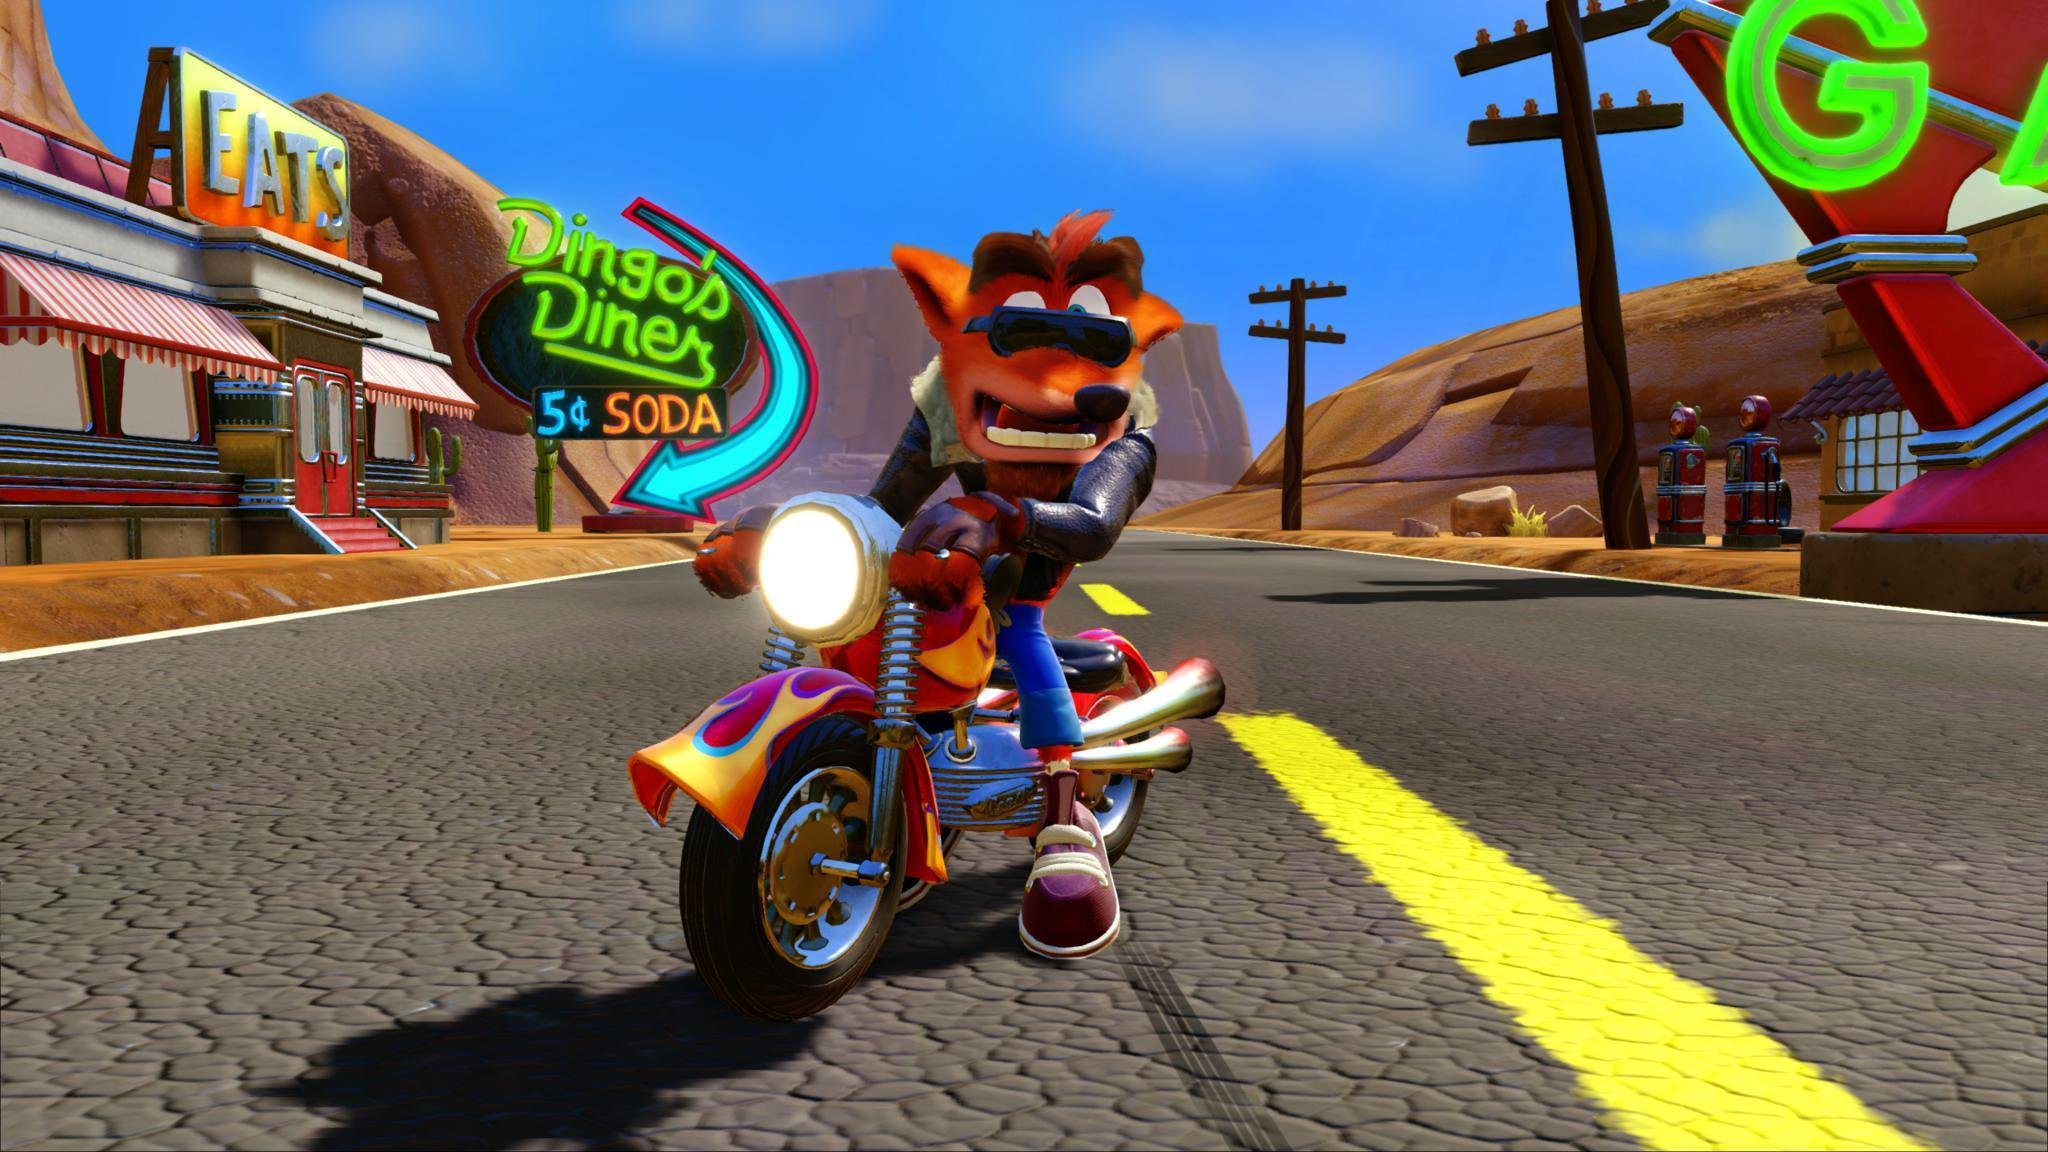 Crash Bandicoot 3 for Xbox One riding a motorcycle